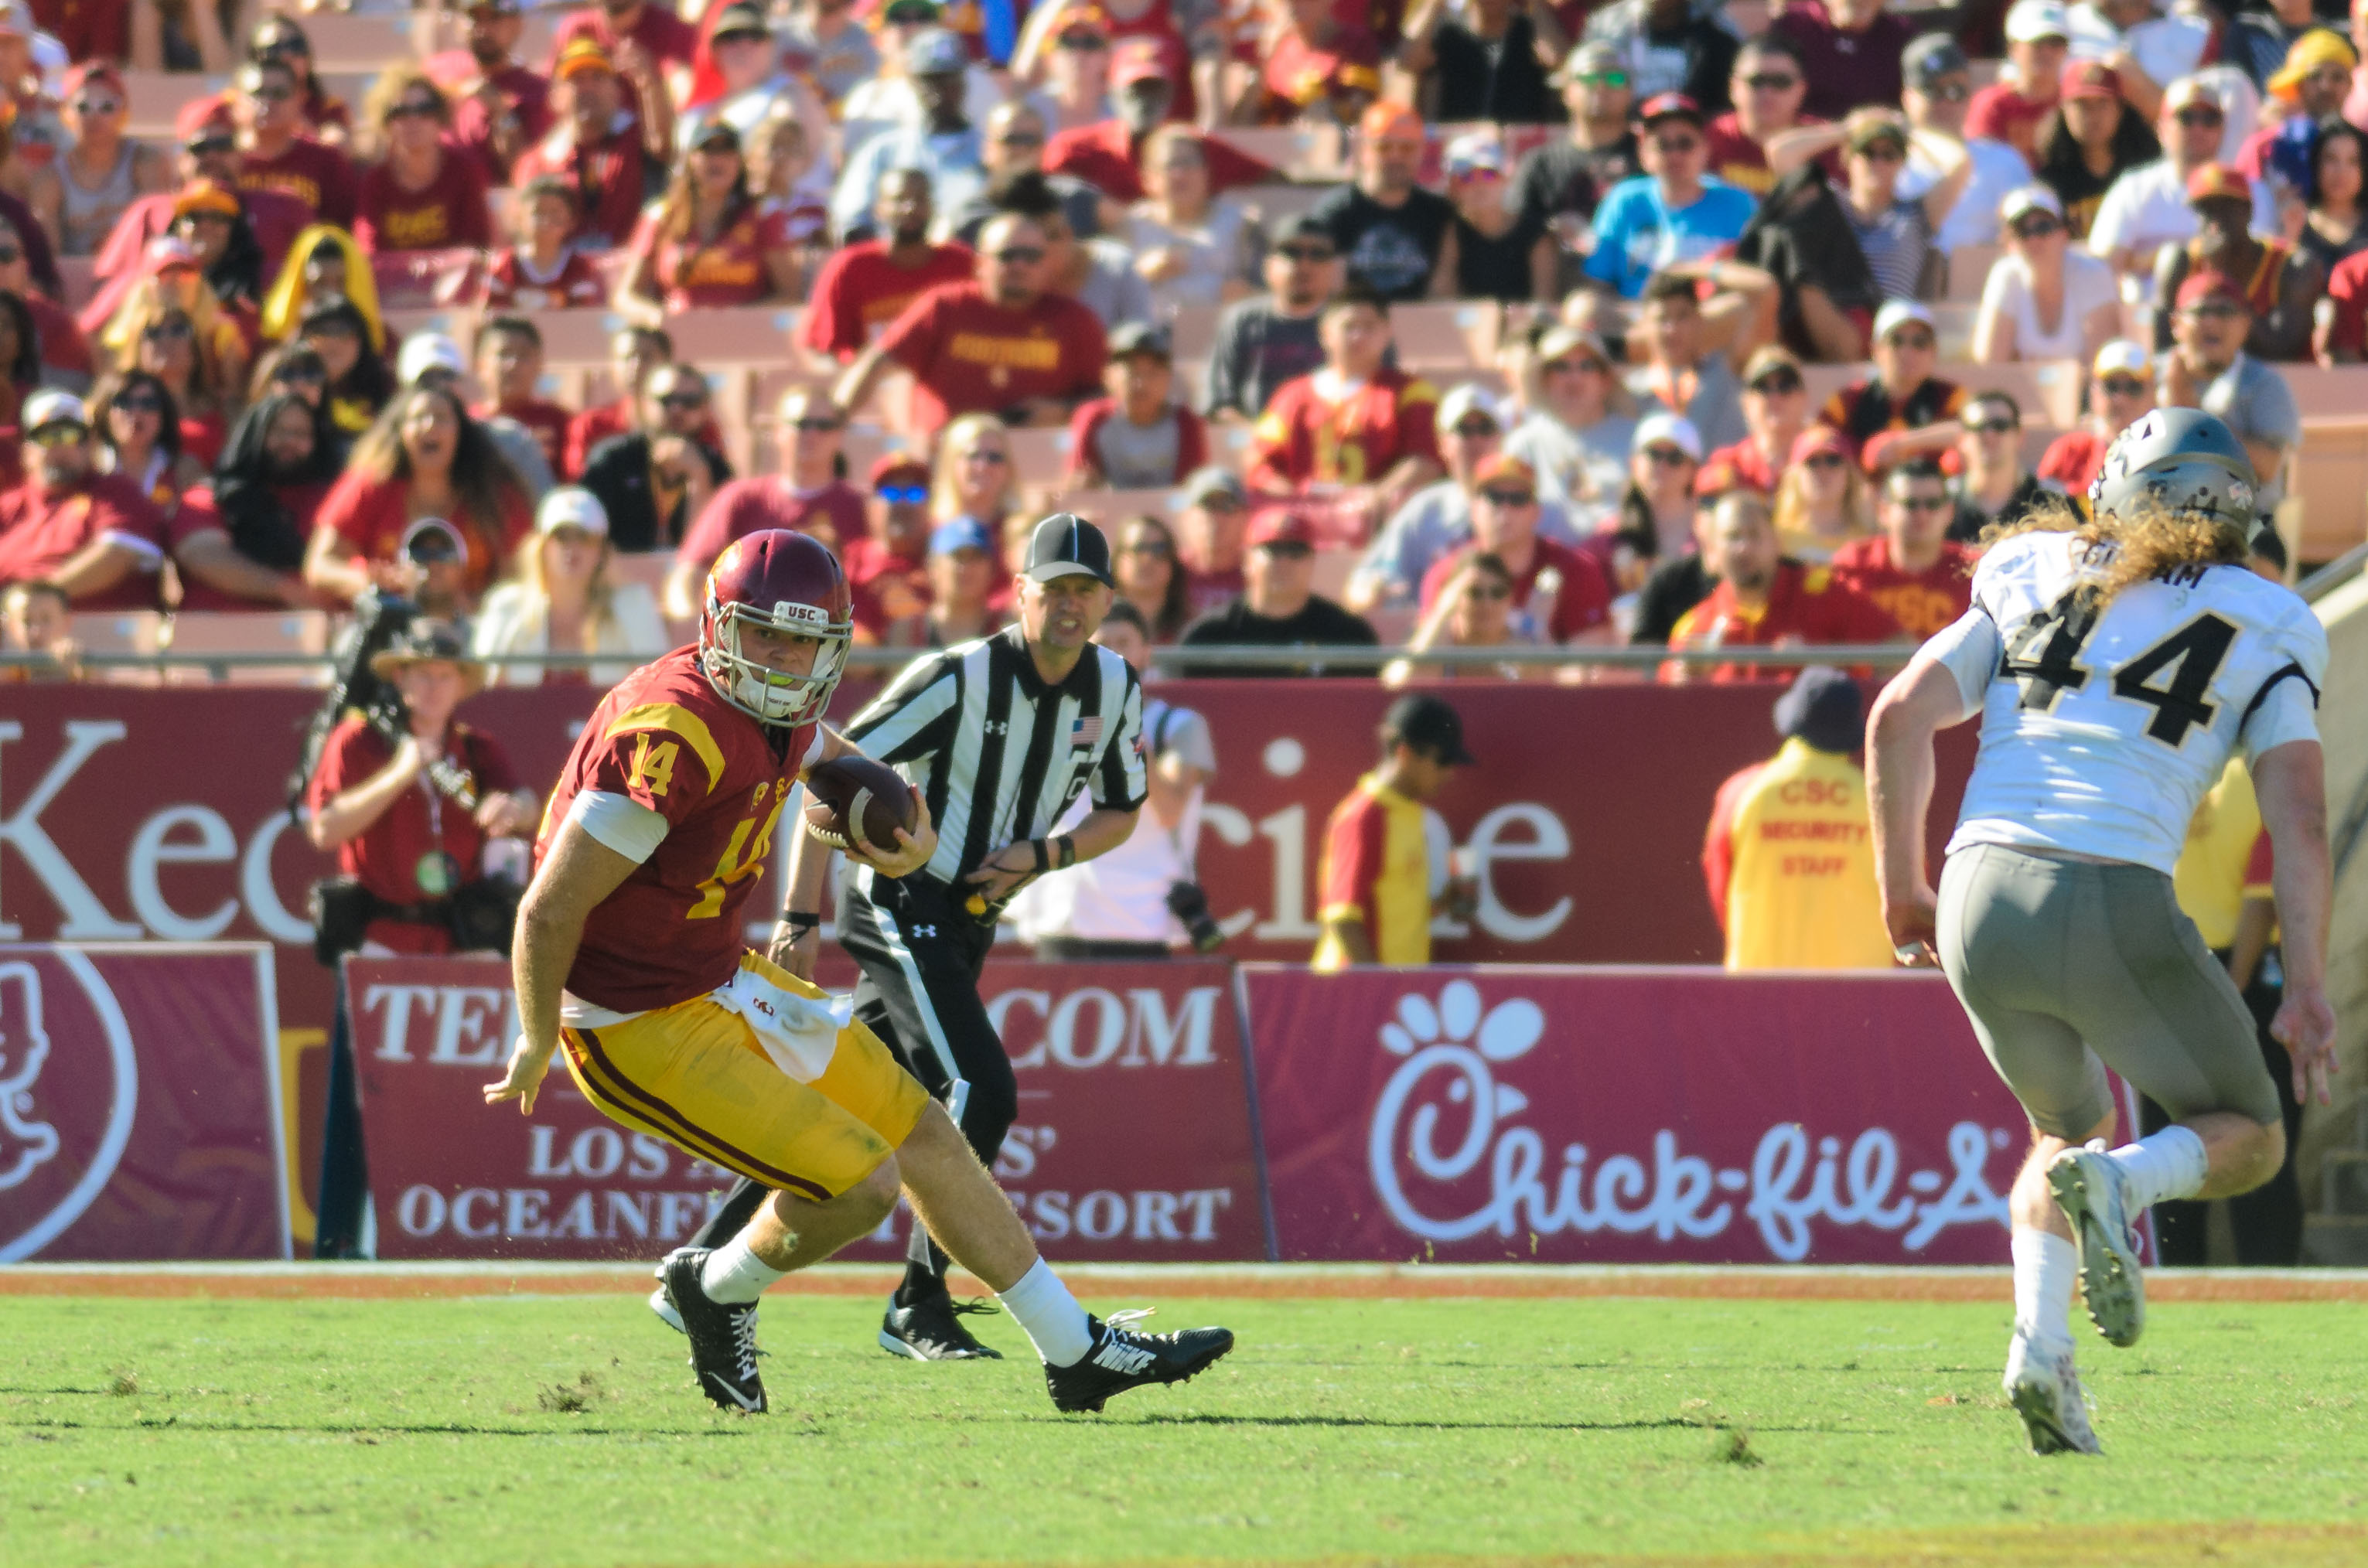 Benjamin Dunn | Daily Trojan Catch me if you can · Redshirt freshman quarterback Sam Darnold has frustrated opposing defenses with  his scrambling ability. Head coach Clay Helton attributed some of his elusiveness to practicing against good players.